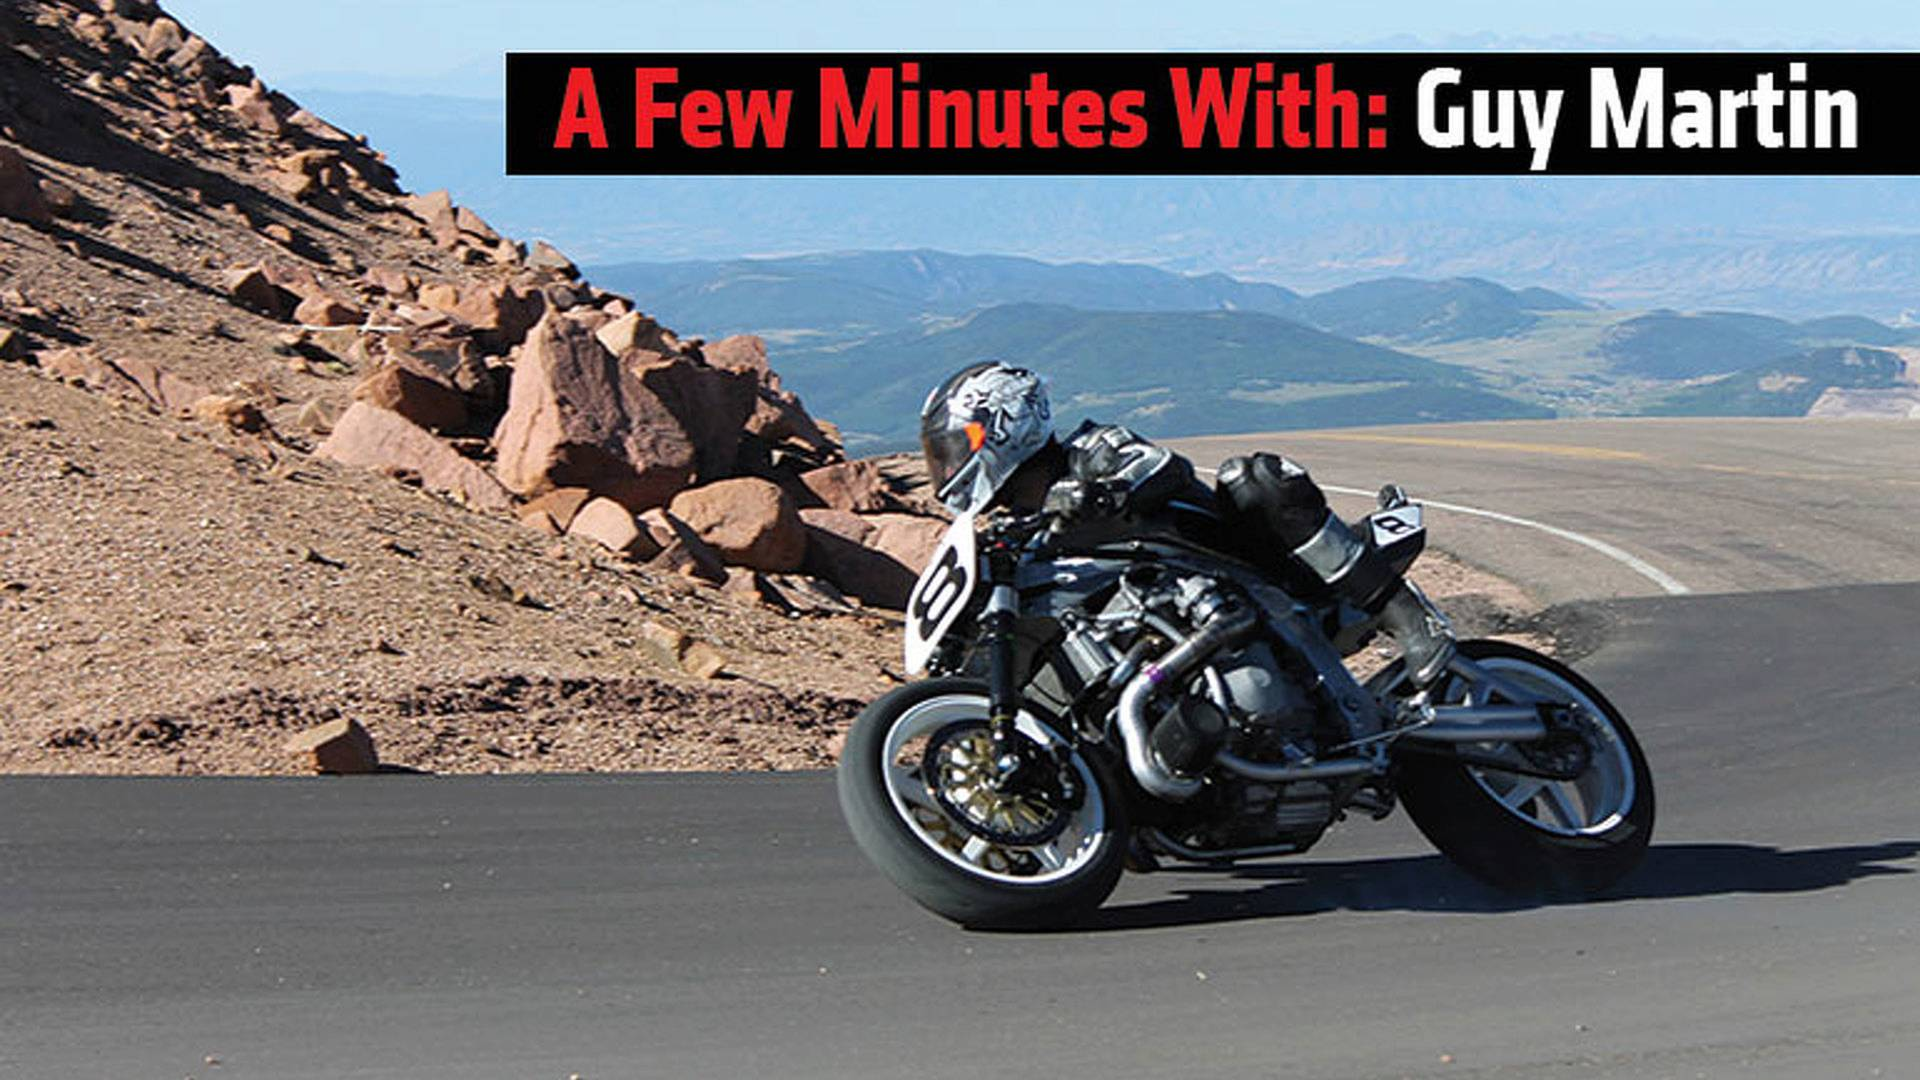 A Few Minutes With Guy Martin